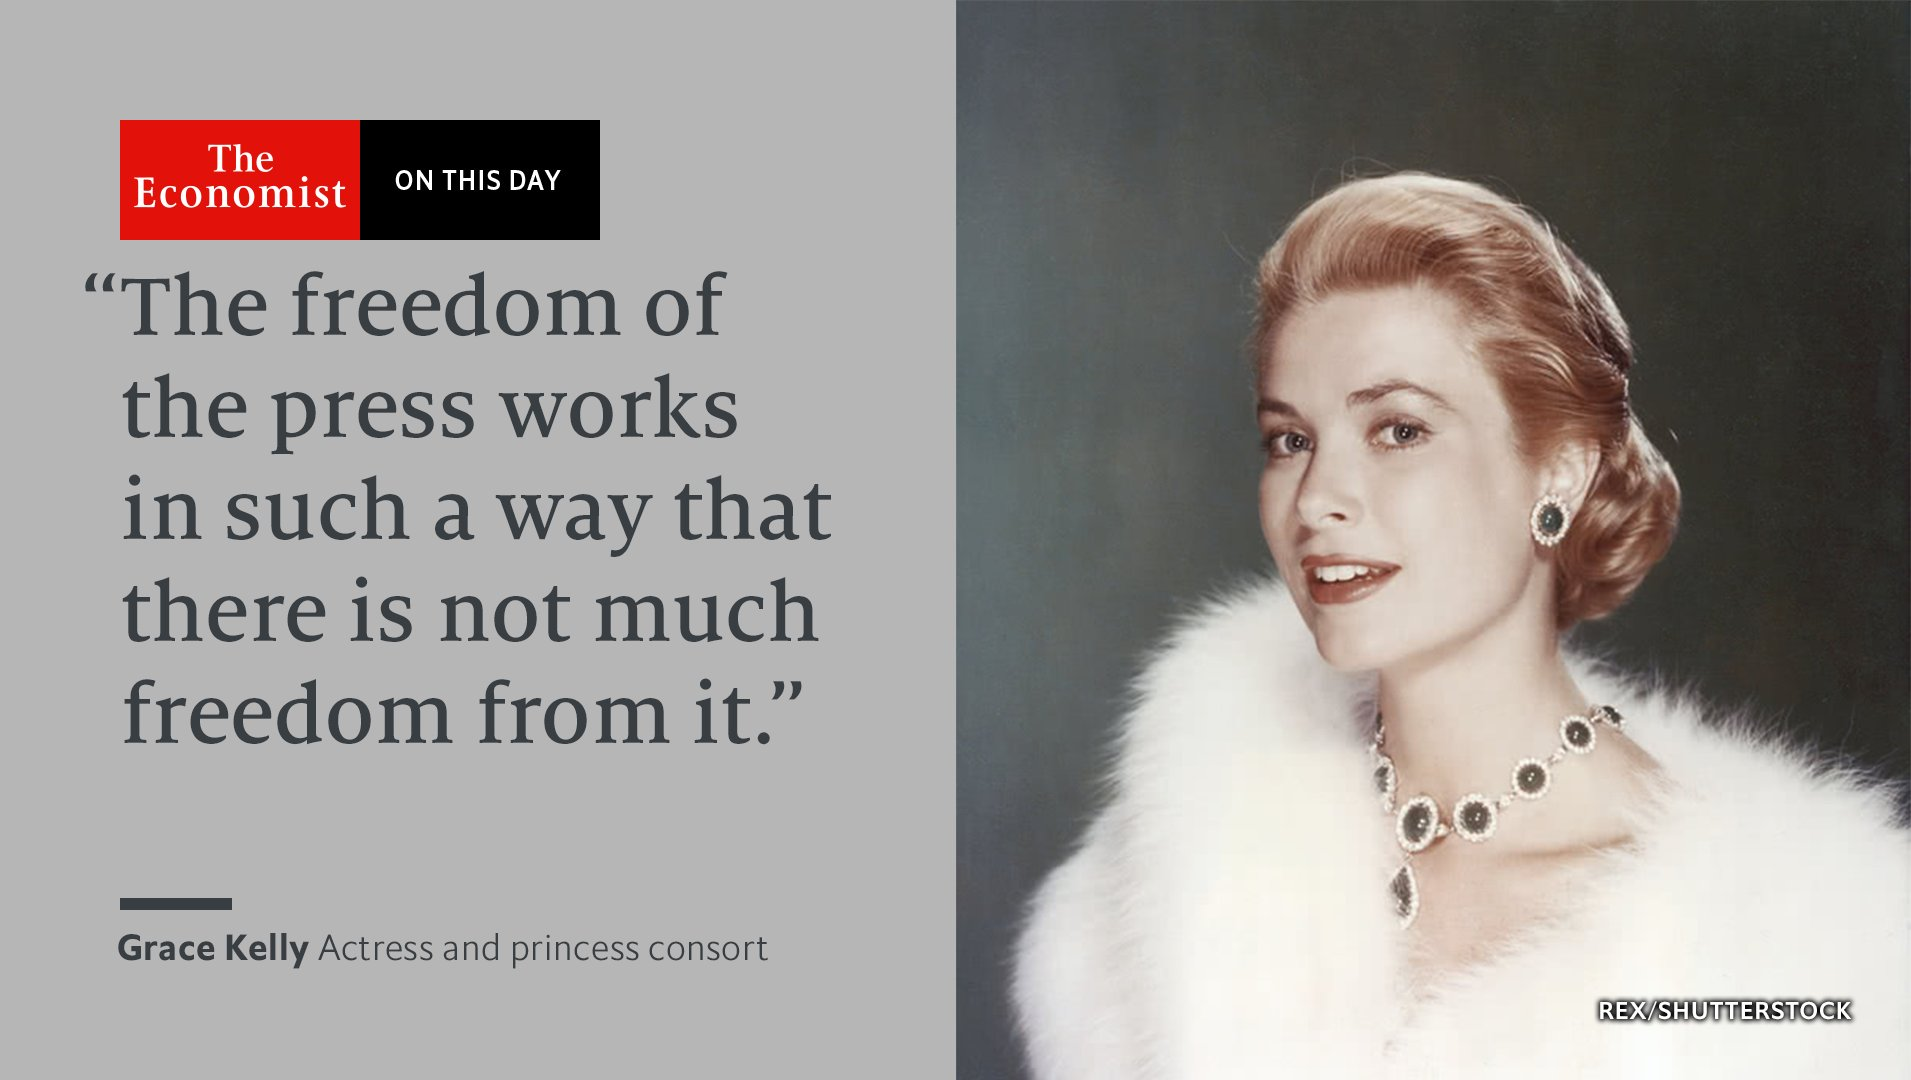 Grace Kelly died #OnThisDay 1982. She made three films with Hitchcock, who considered her the ultimate femme fatale https://t.co/DpuQGbcoNf